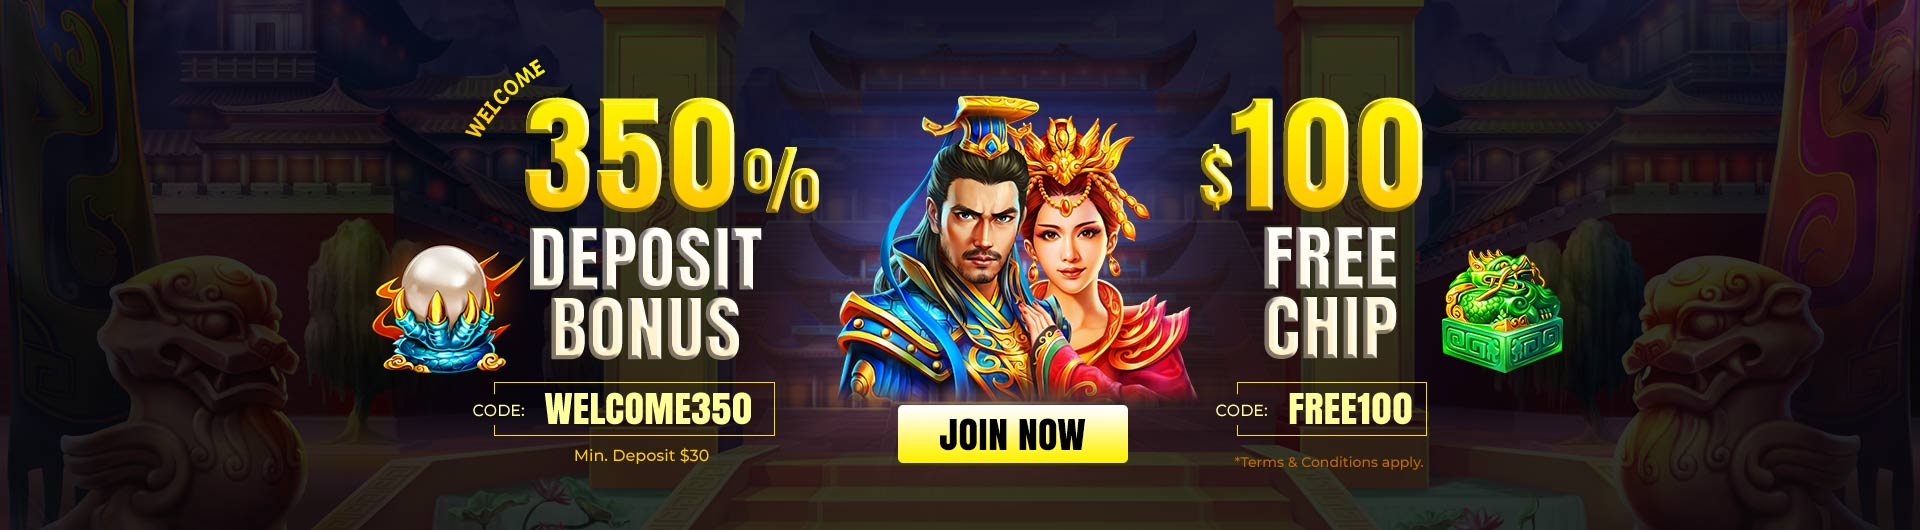 Exclusive Welcome Offer with $100 Freechip